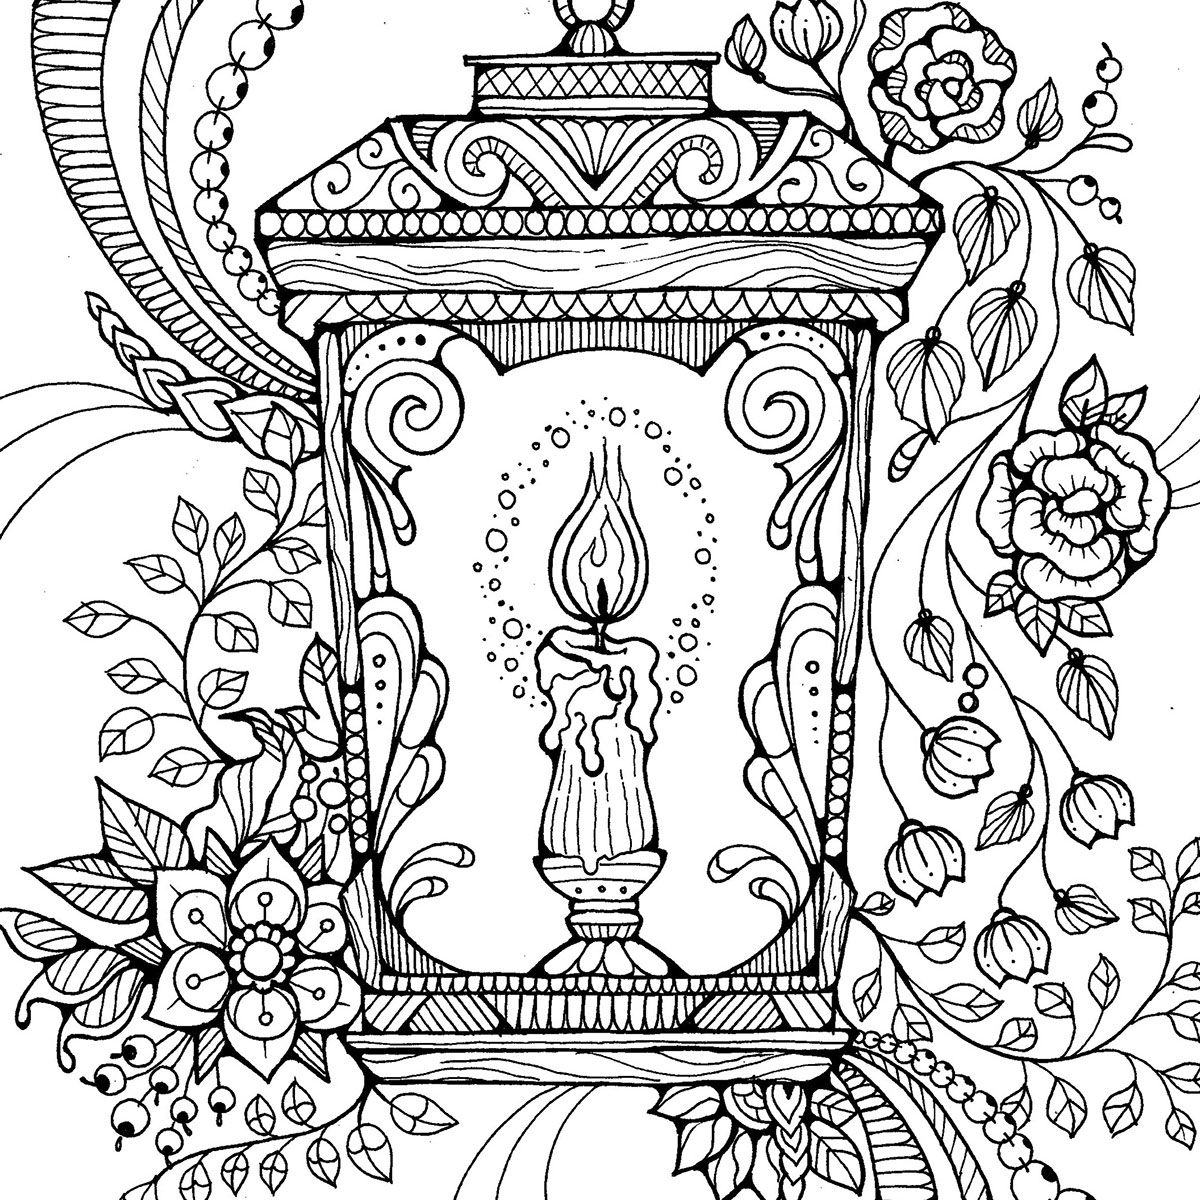 P 40 coloring pages - Colouring Pages By Dee Mans On Behance